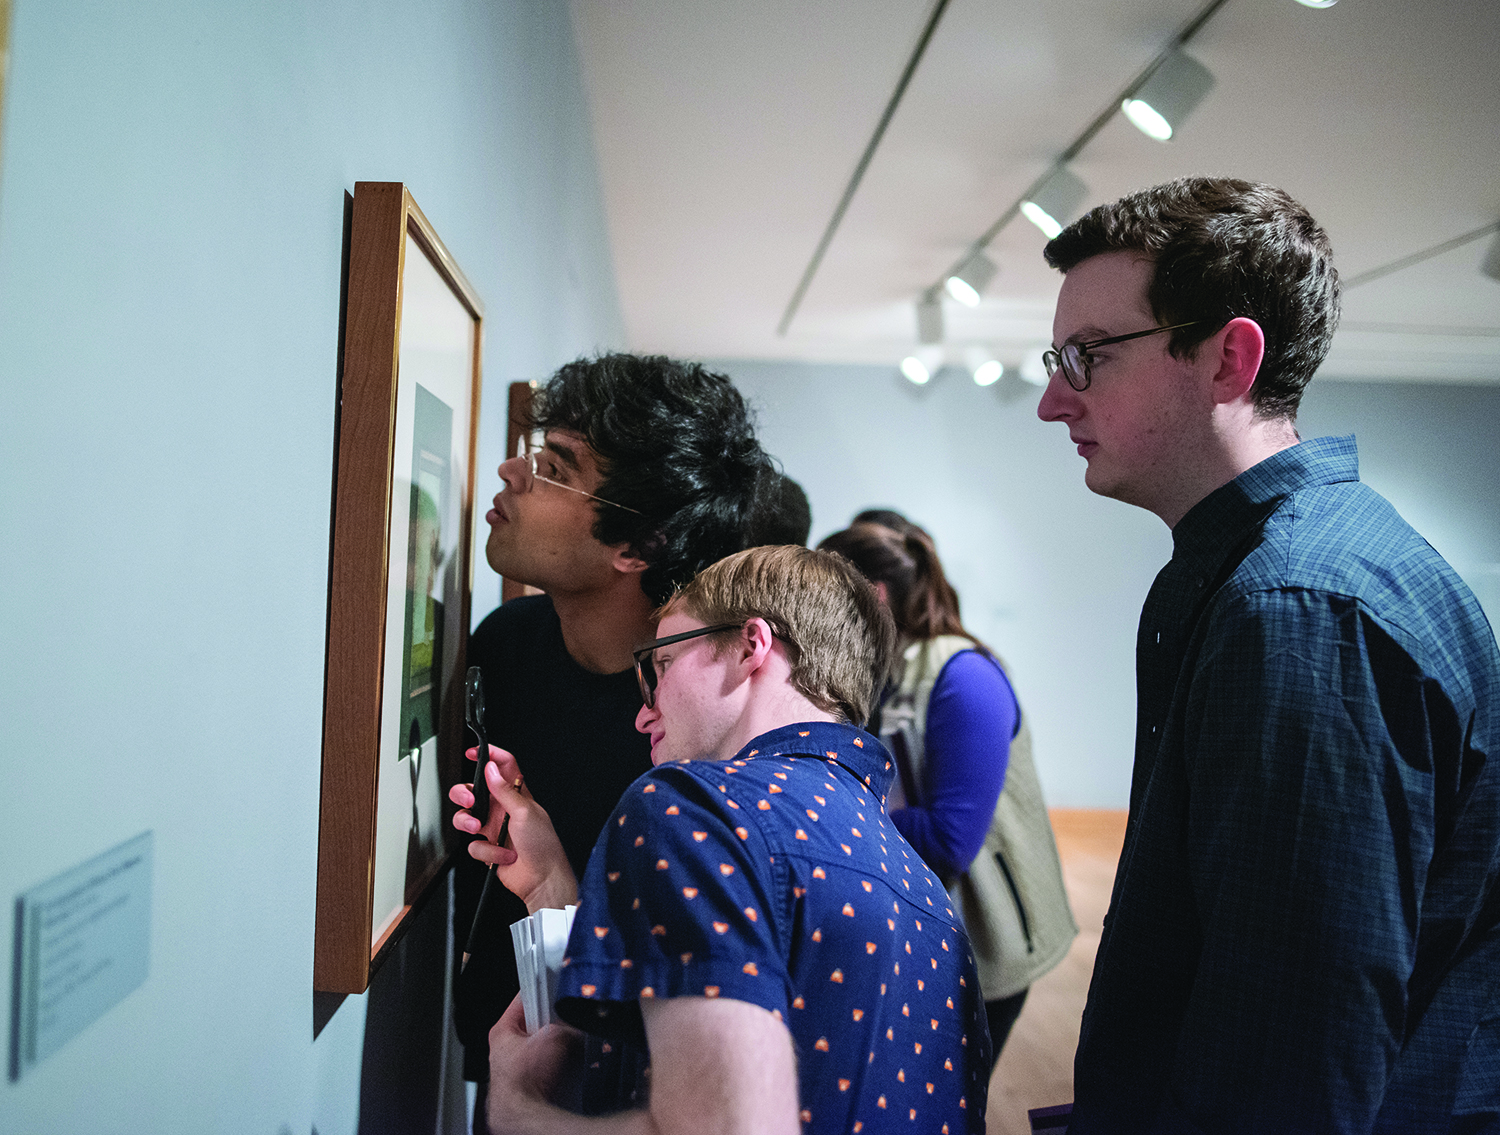 Photo of students closely inspecting a piece of art on the wall at WCMA.